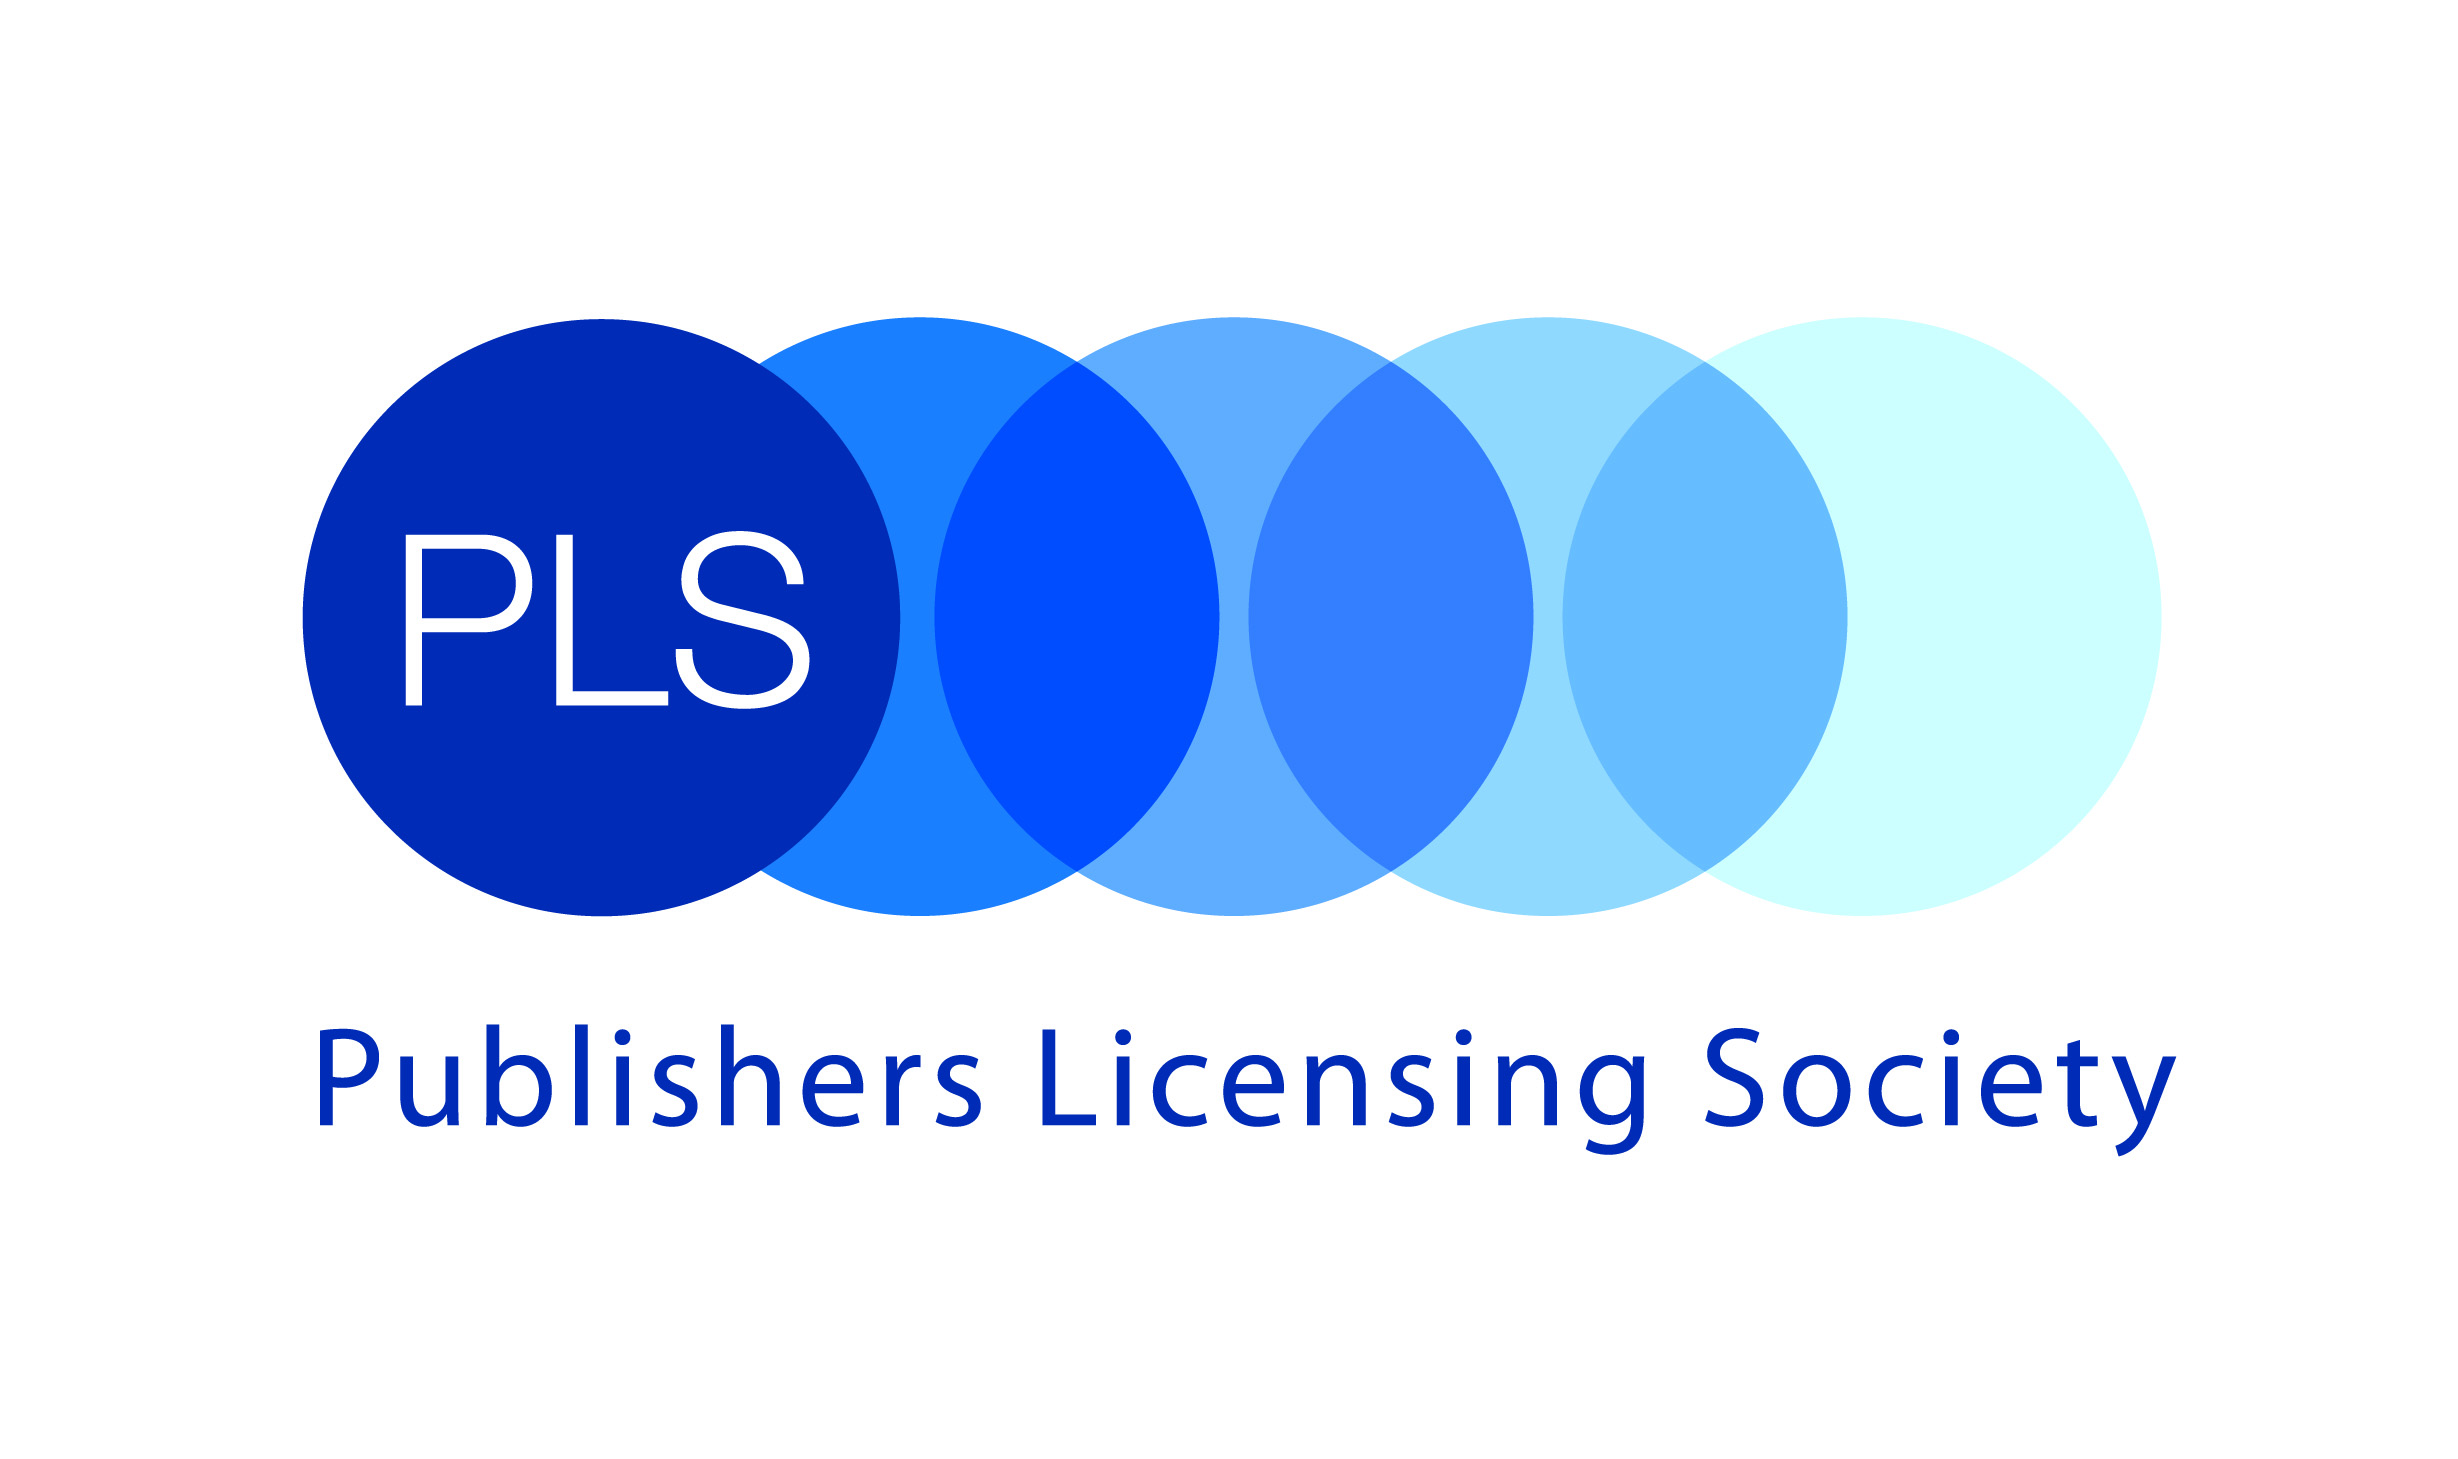 Publishing Licensing Society